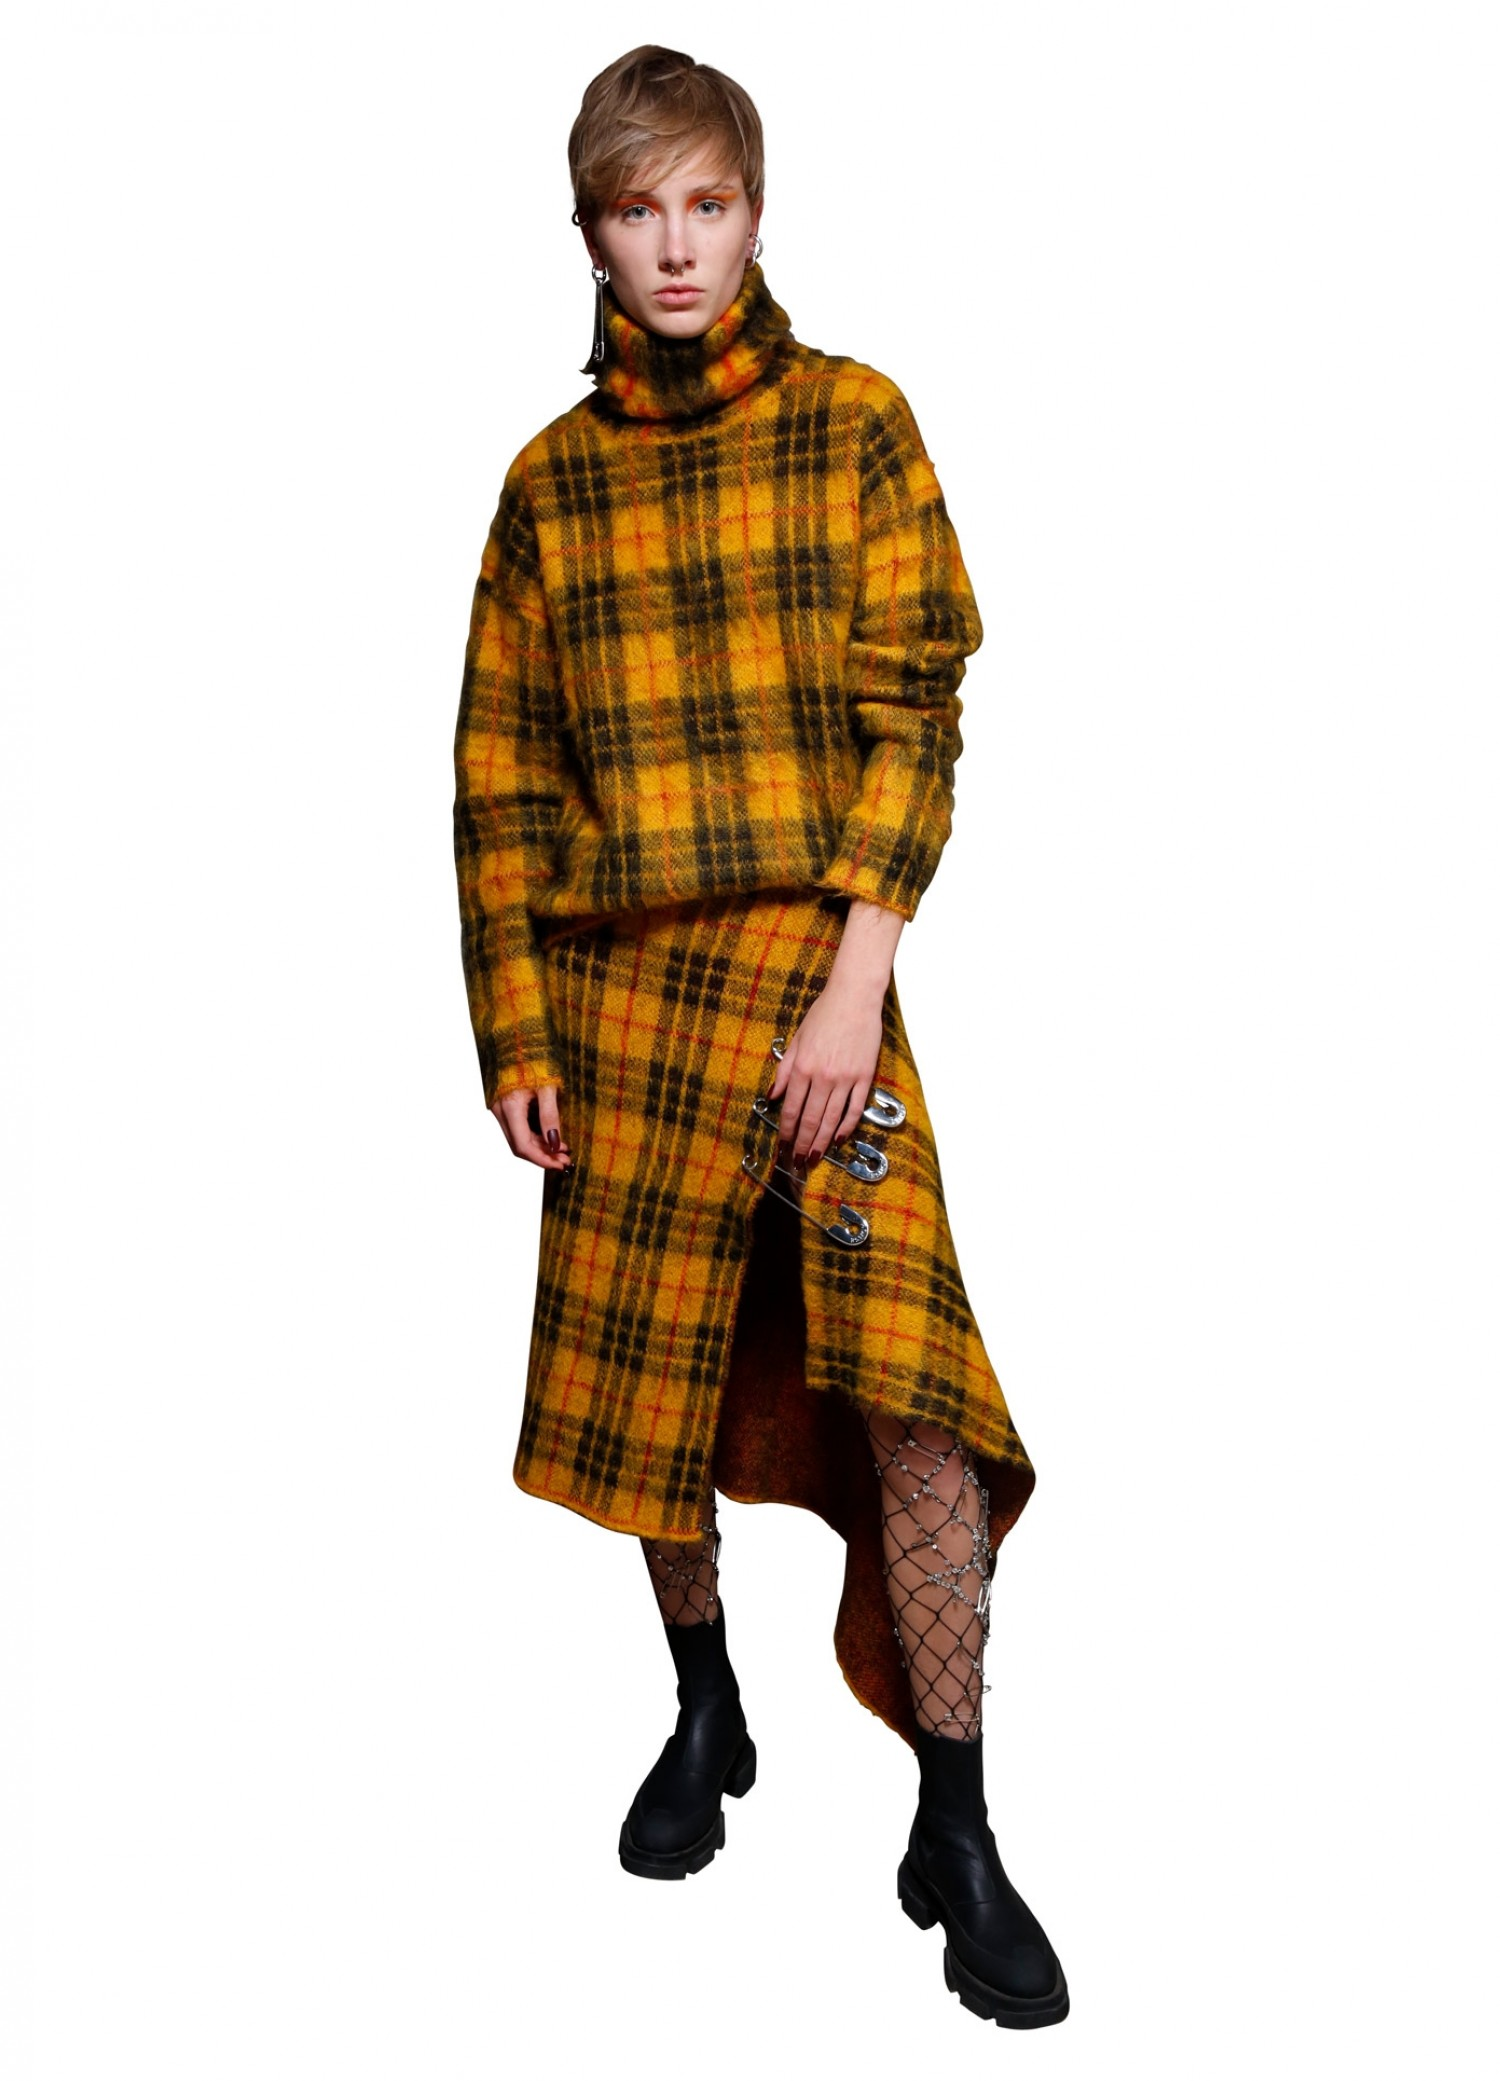 MONSE Plaid Mohair Turtleneck in Mustard Multi on Model Front View